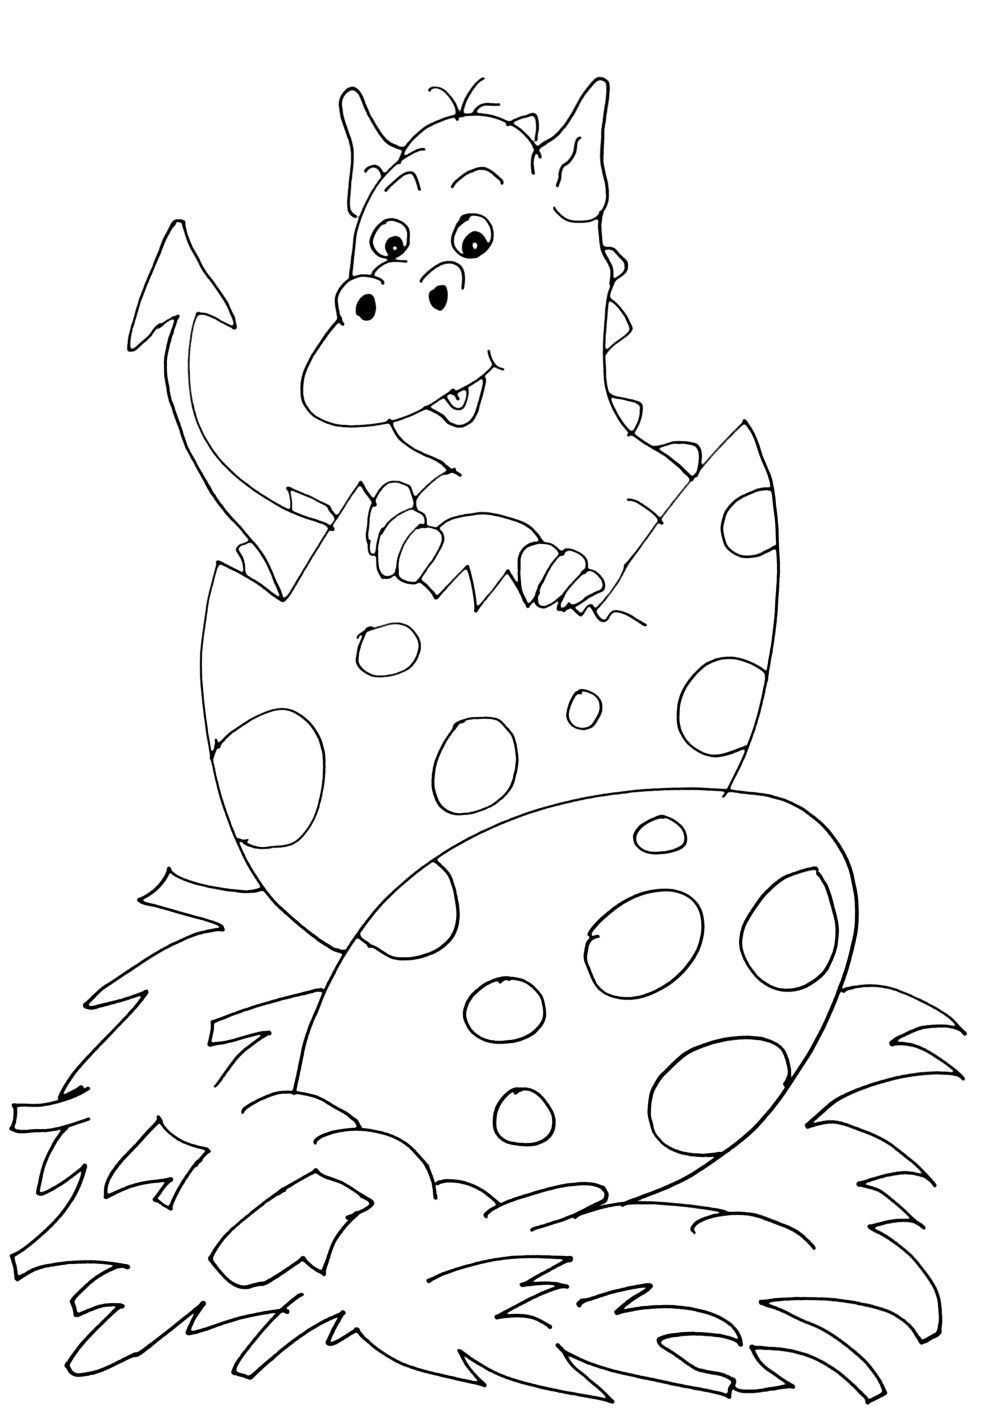 Dragon emerging from an egg | Knights & dragons coloring pages ...